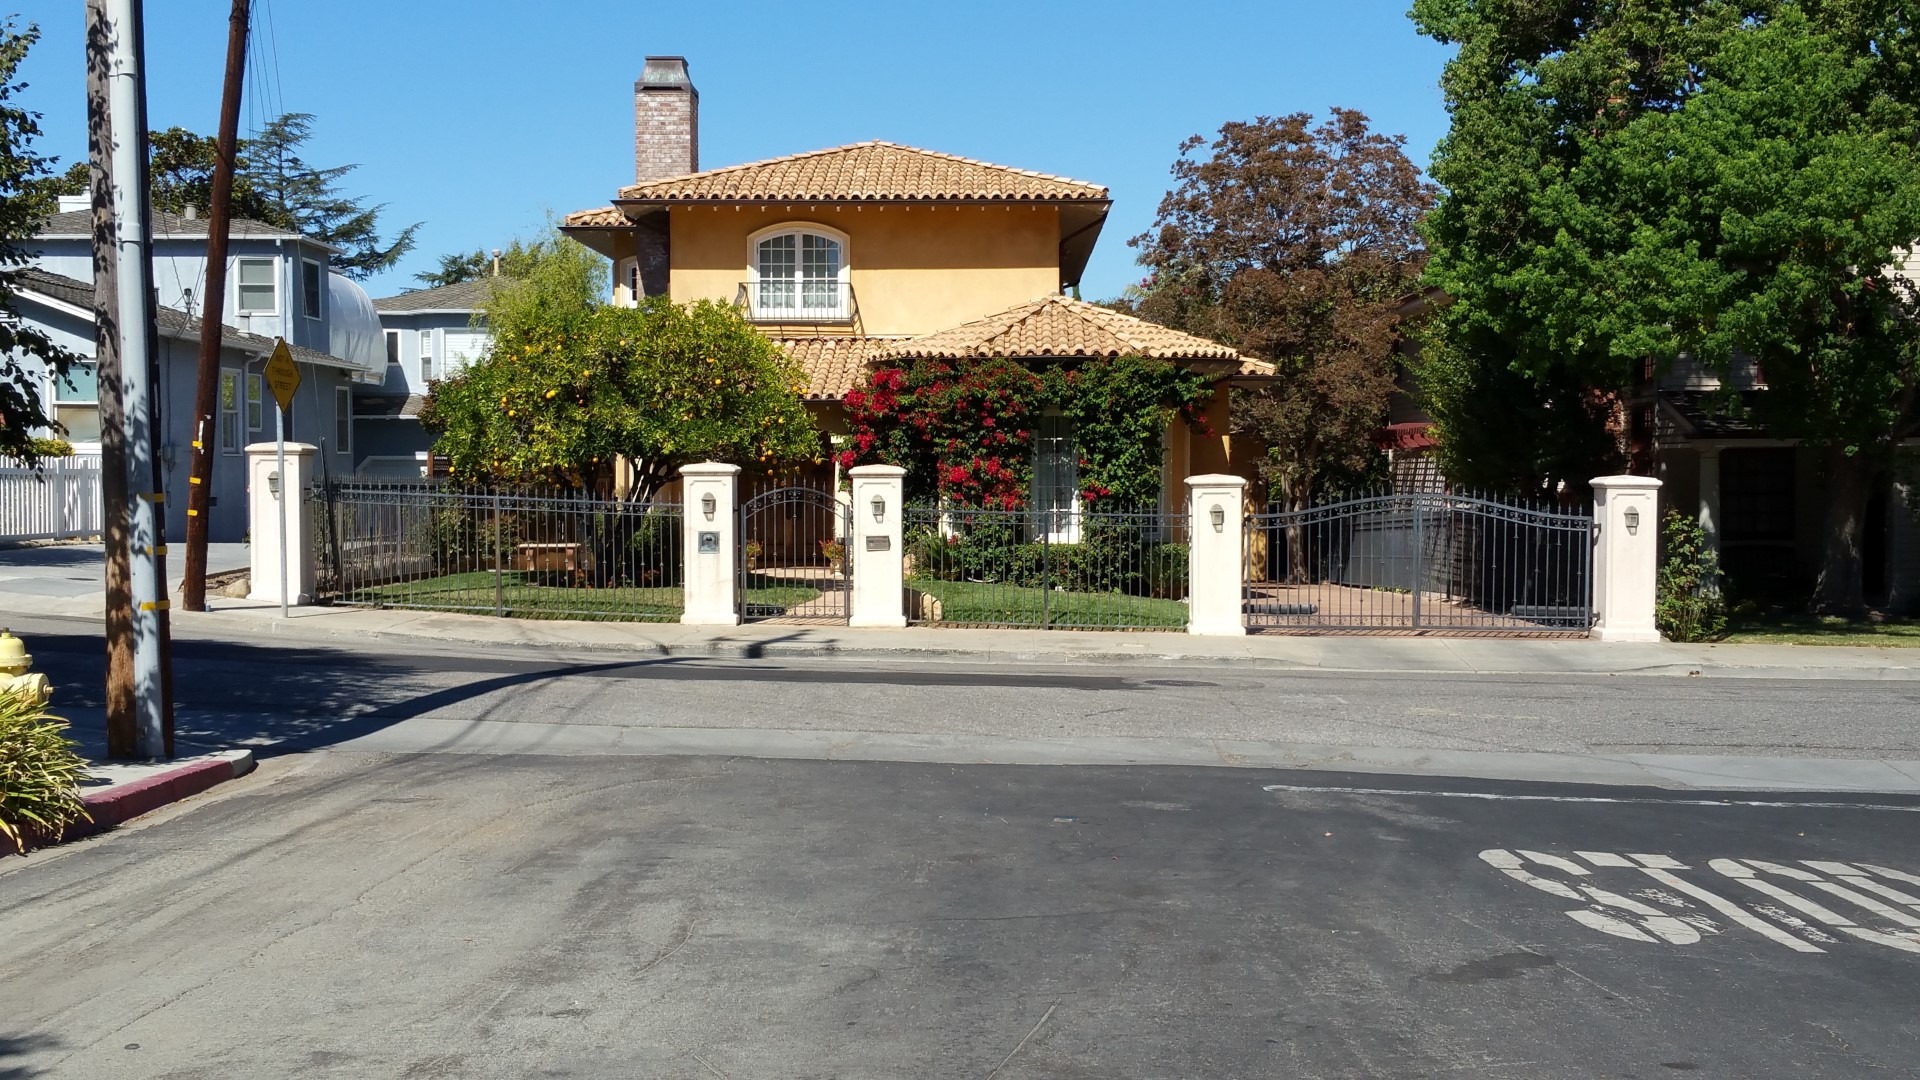 12 Mediterranean style home on Mariposa at San Benito1 - Creffield Heights and San Benito Avenue area